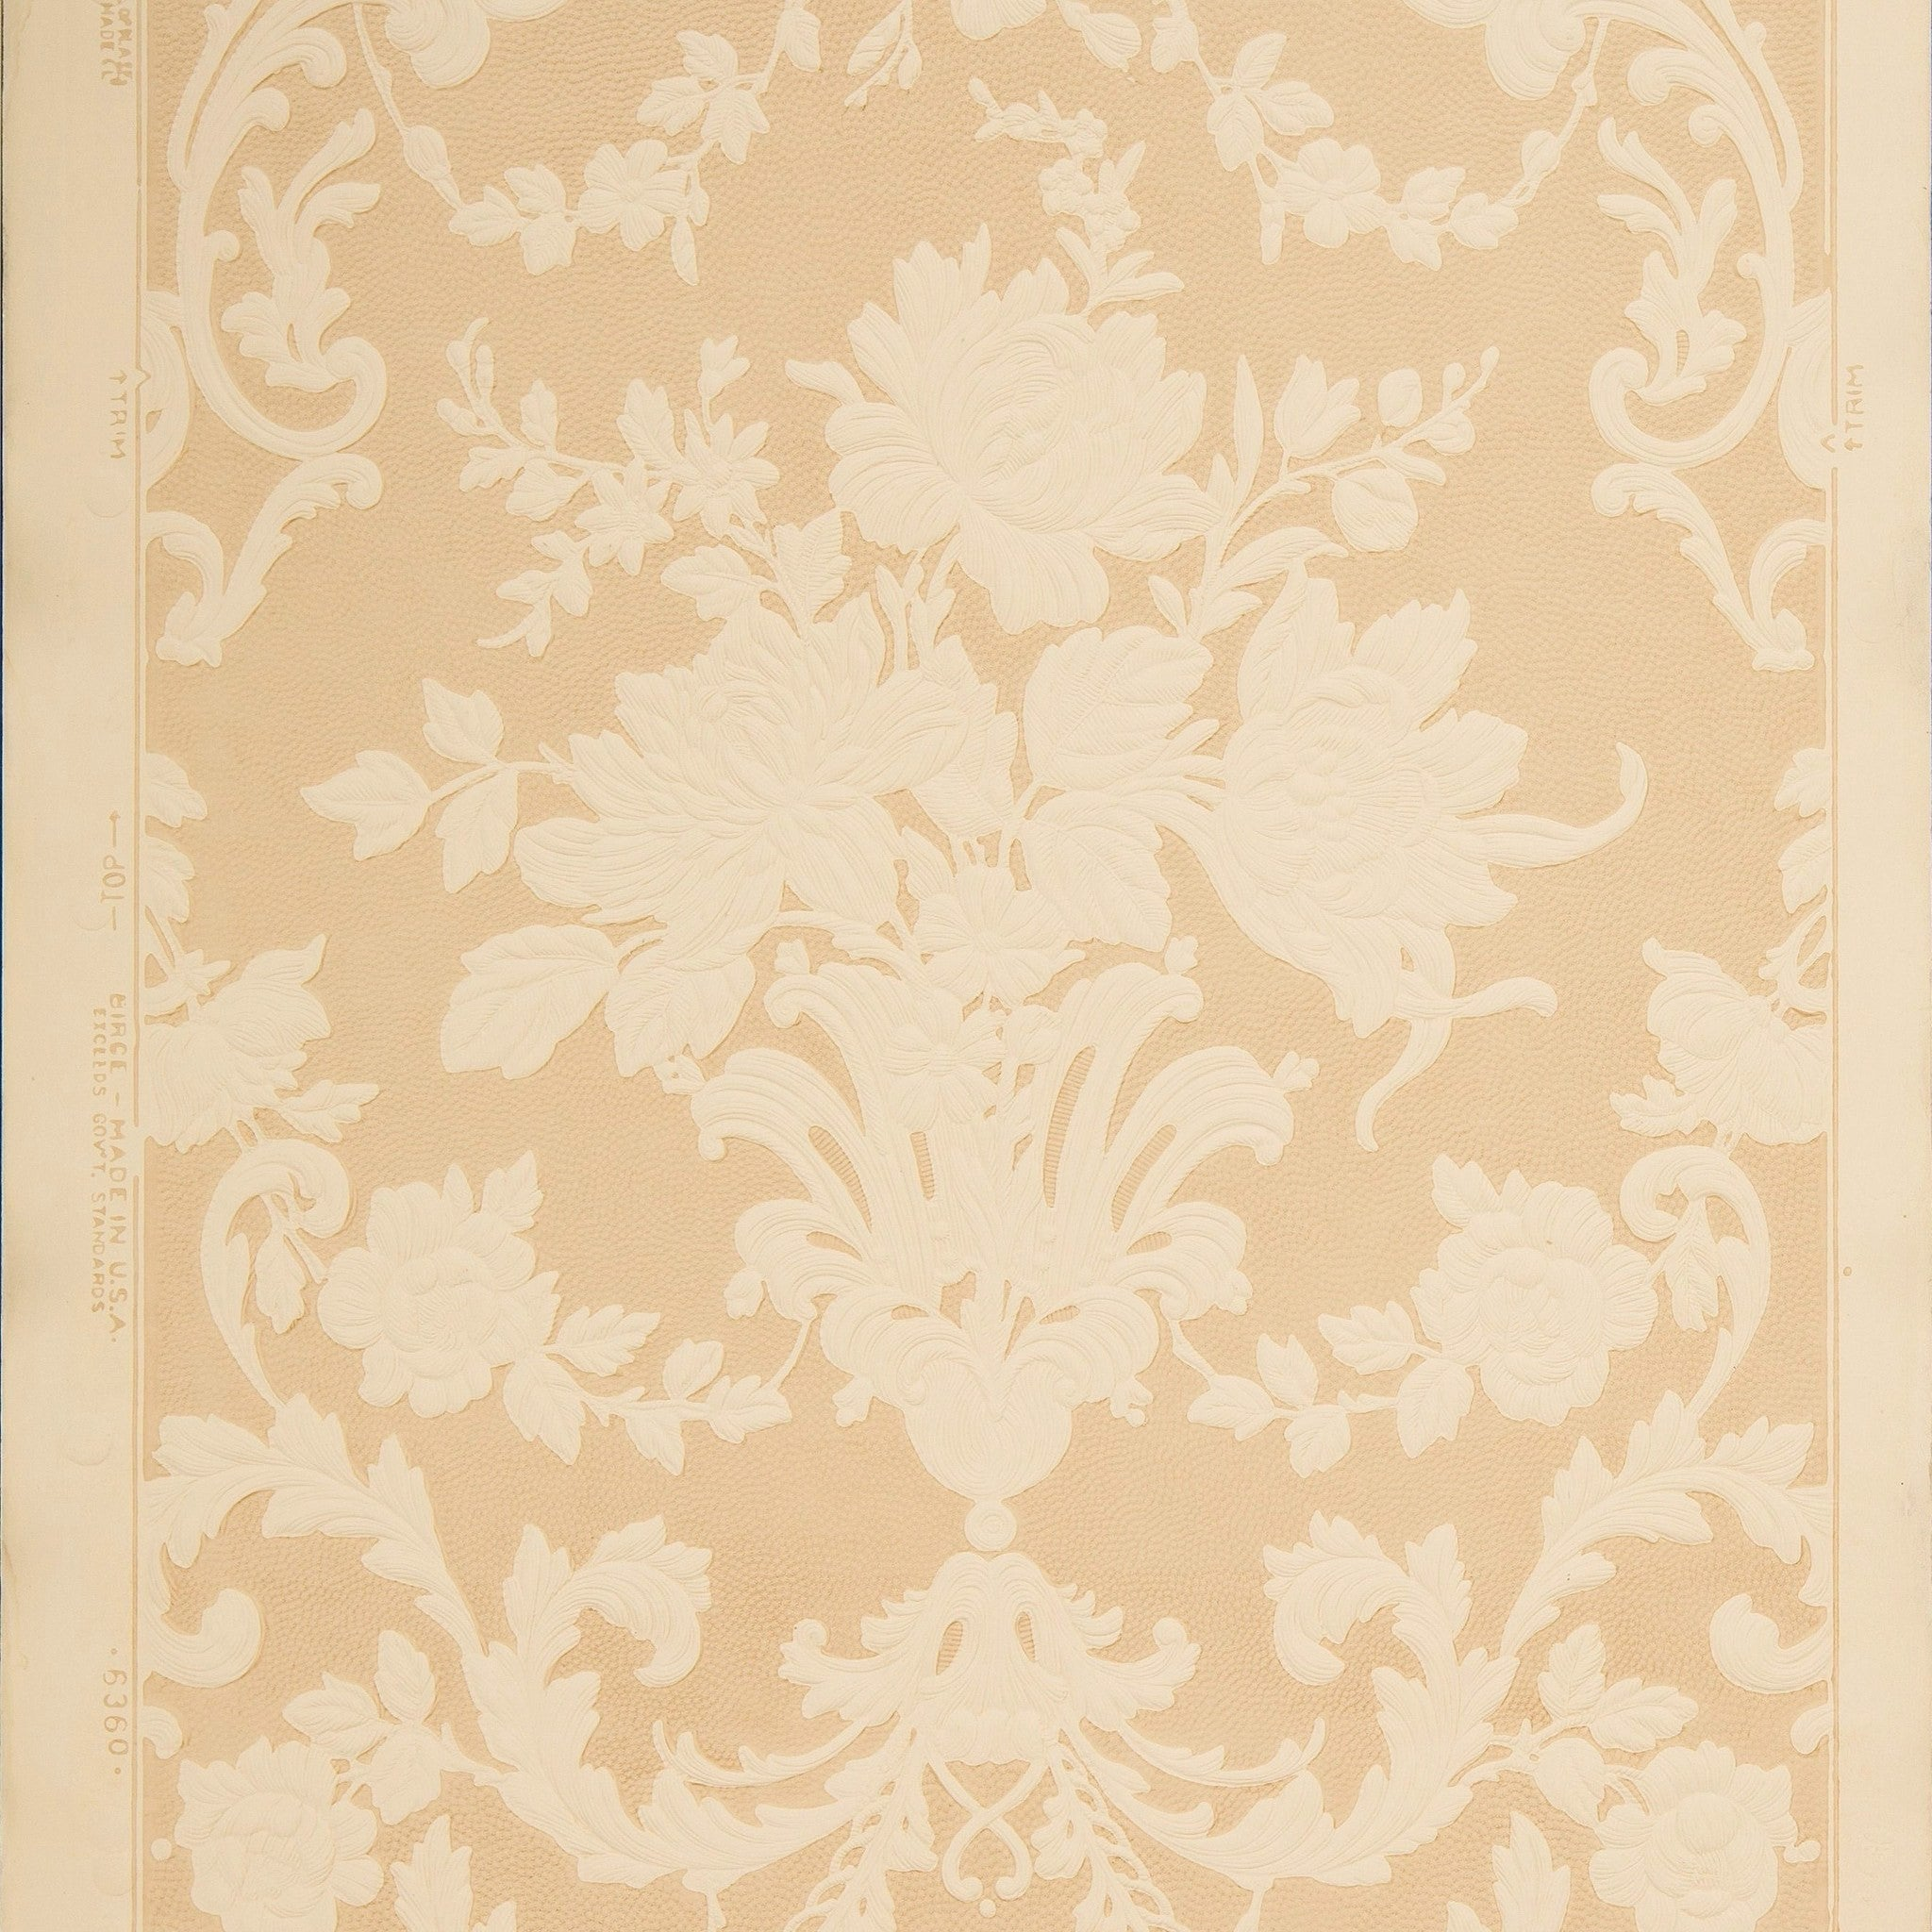 Embossed Floral Damask Antique Wallpaper Bolling Company